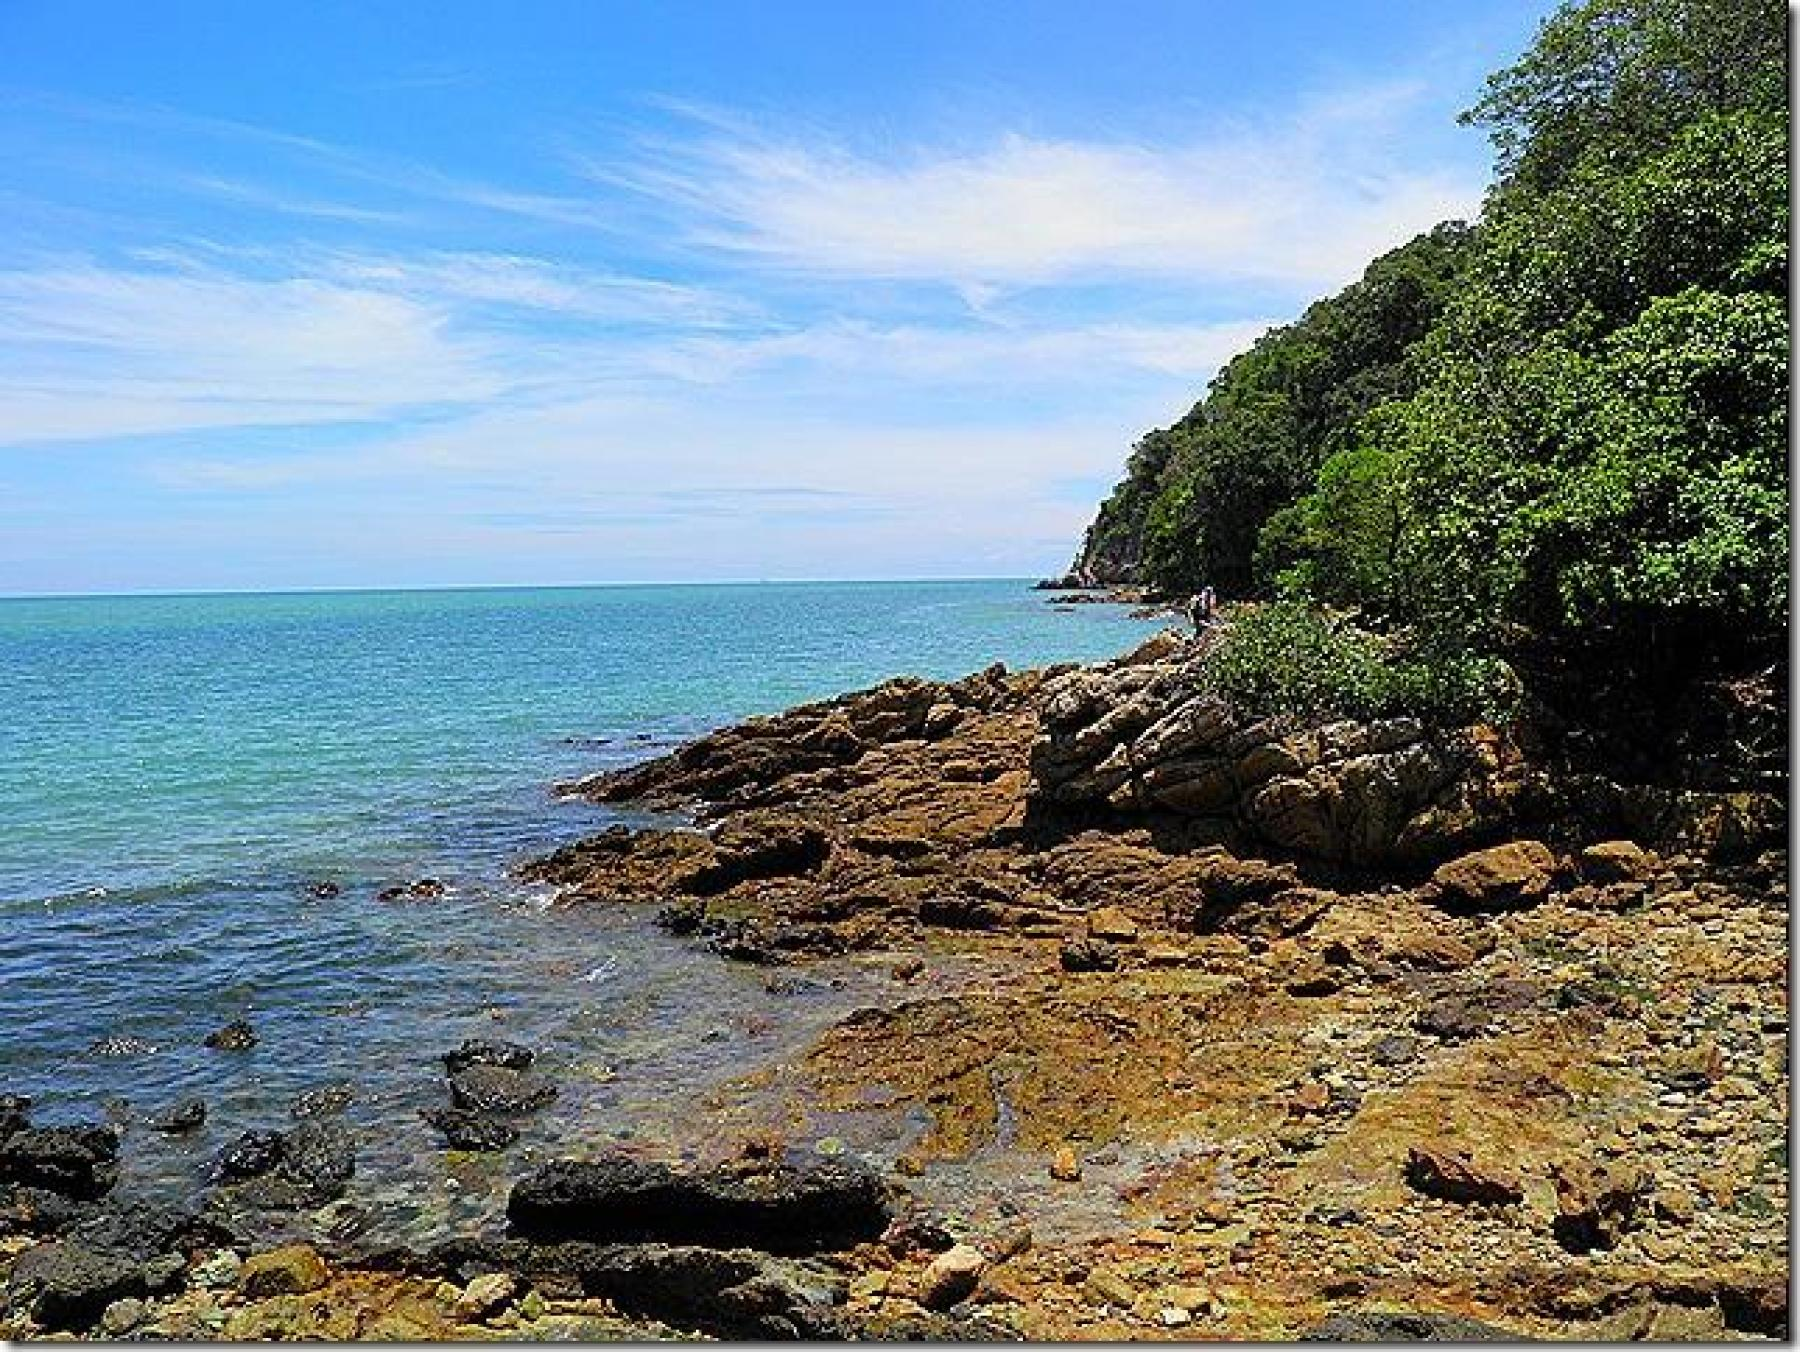 Squeeze&Slide Pala Rock & Discover Hidden Beaches by the Oldest Malay Lighthouse starting at Kuala Lumpur Malaysia